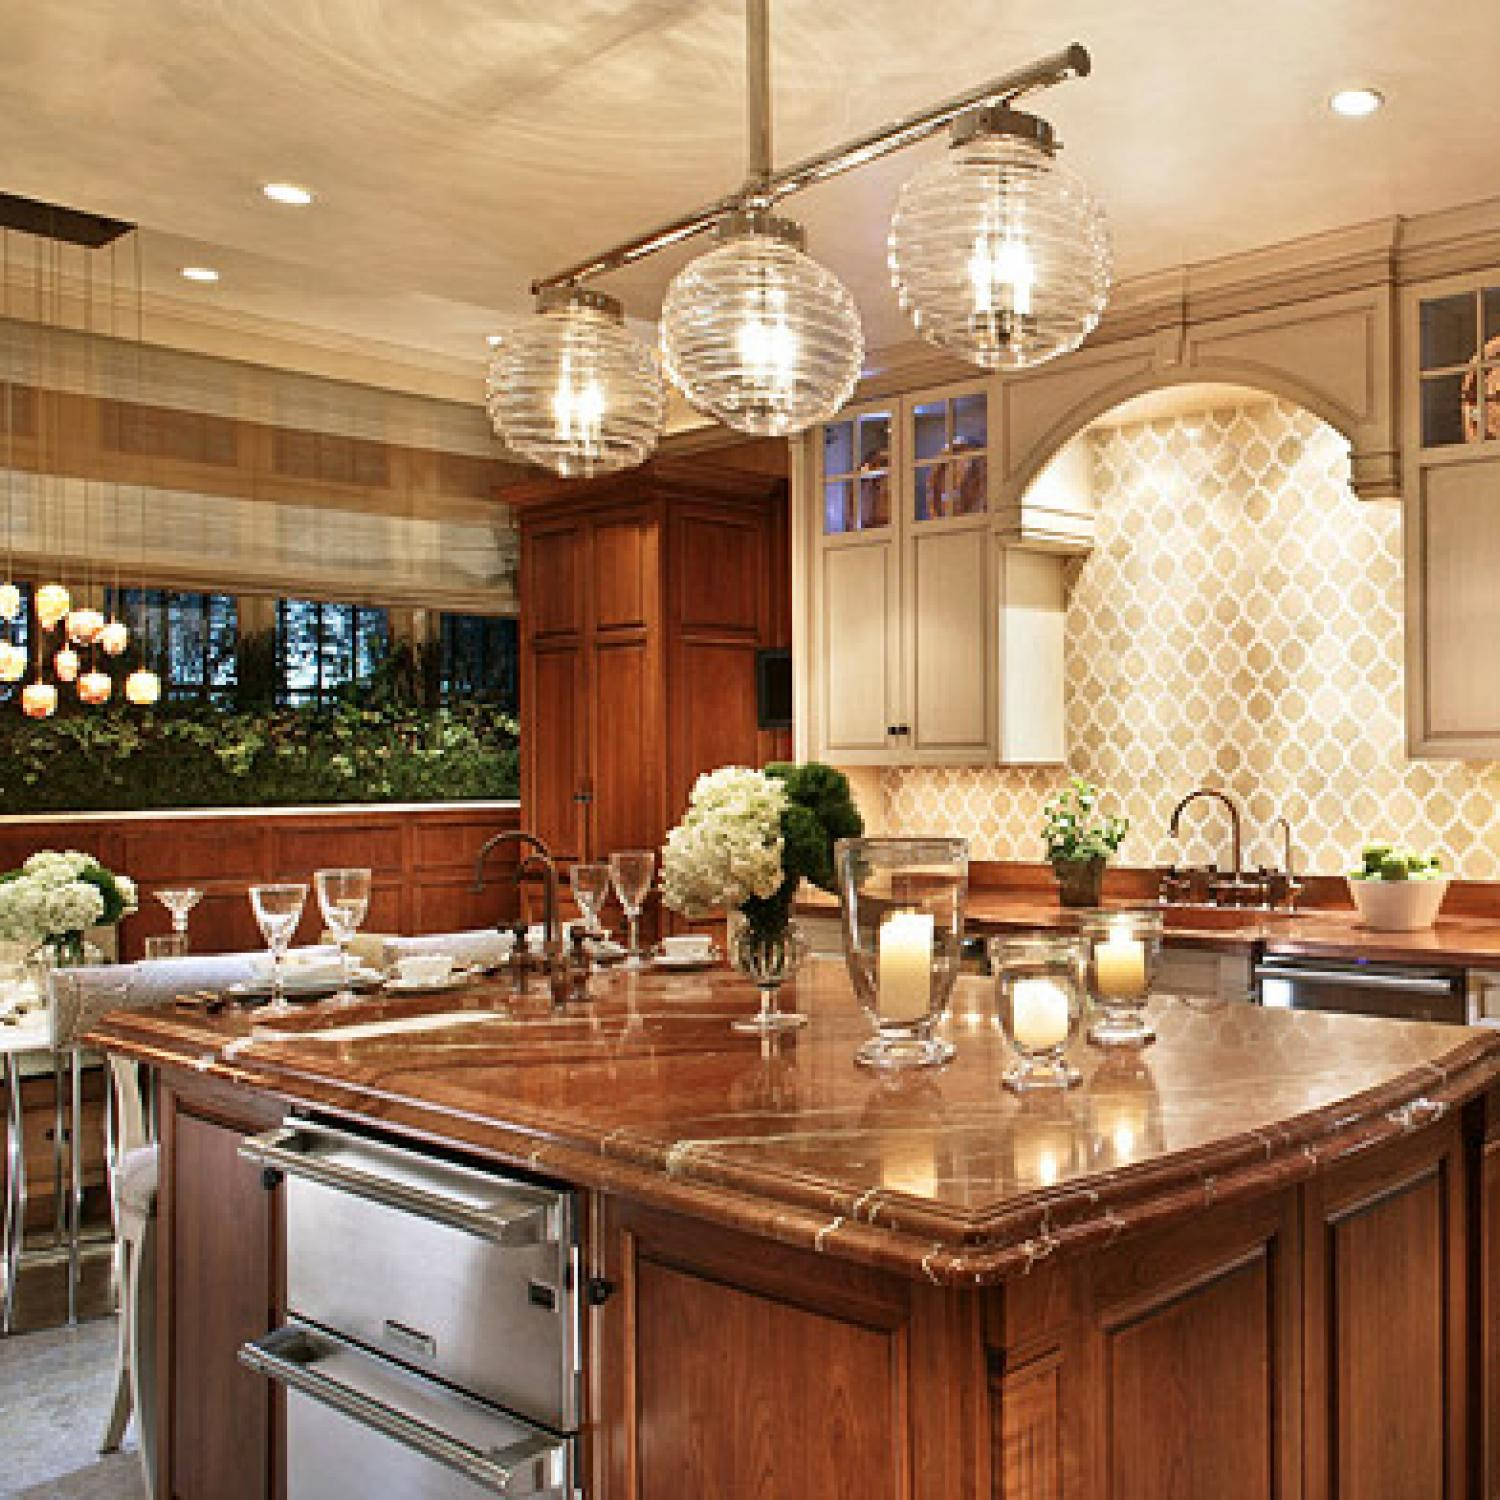 Stylish Islands Traditional Kitchens Home